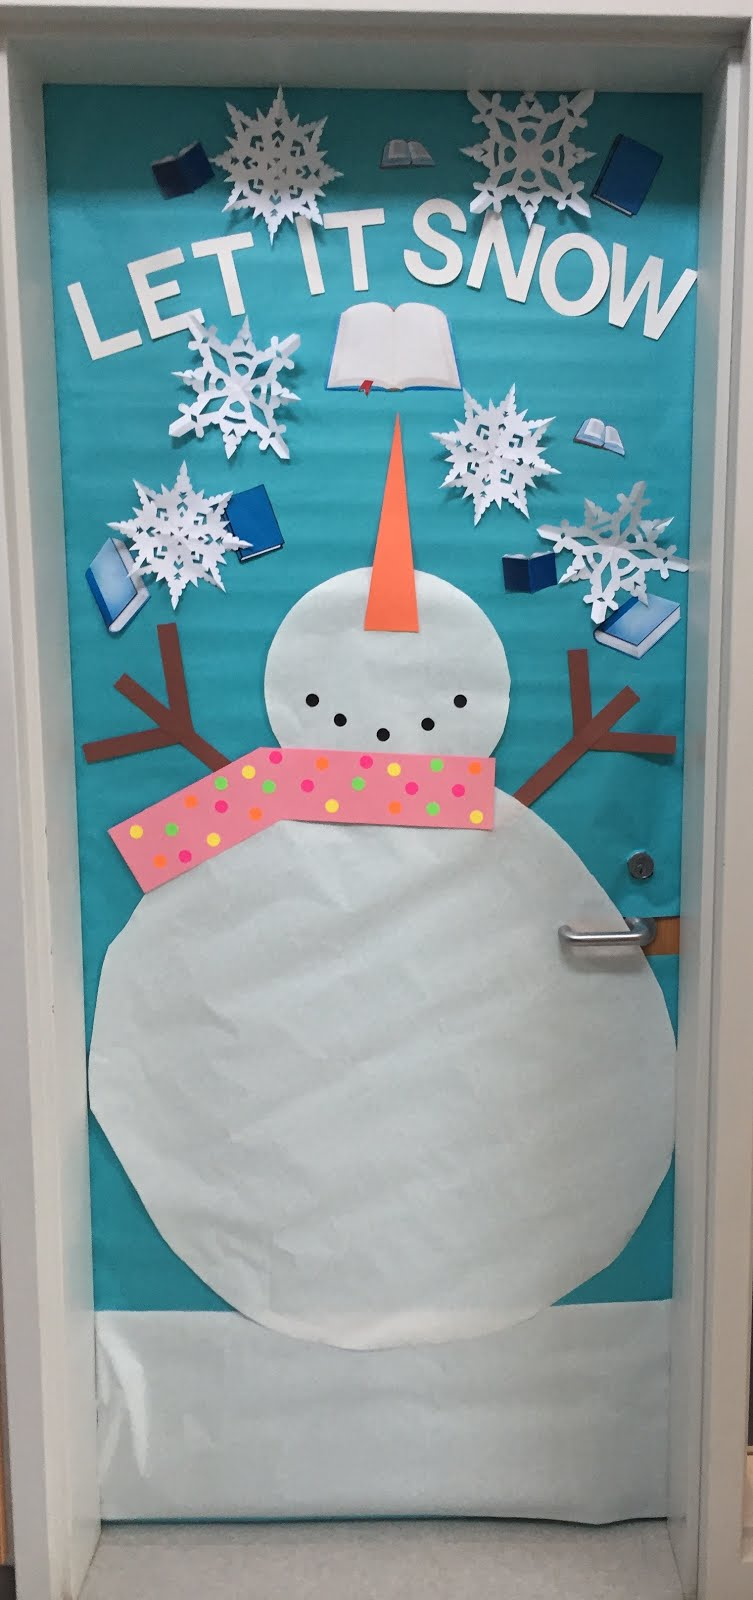 Our Reading Specialist came up with this awesome winter themed door! & Creative Elementary School Counselor: Winter Door Decorations! pezcame.com